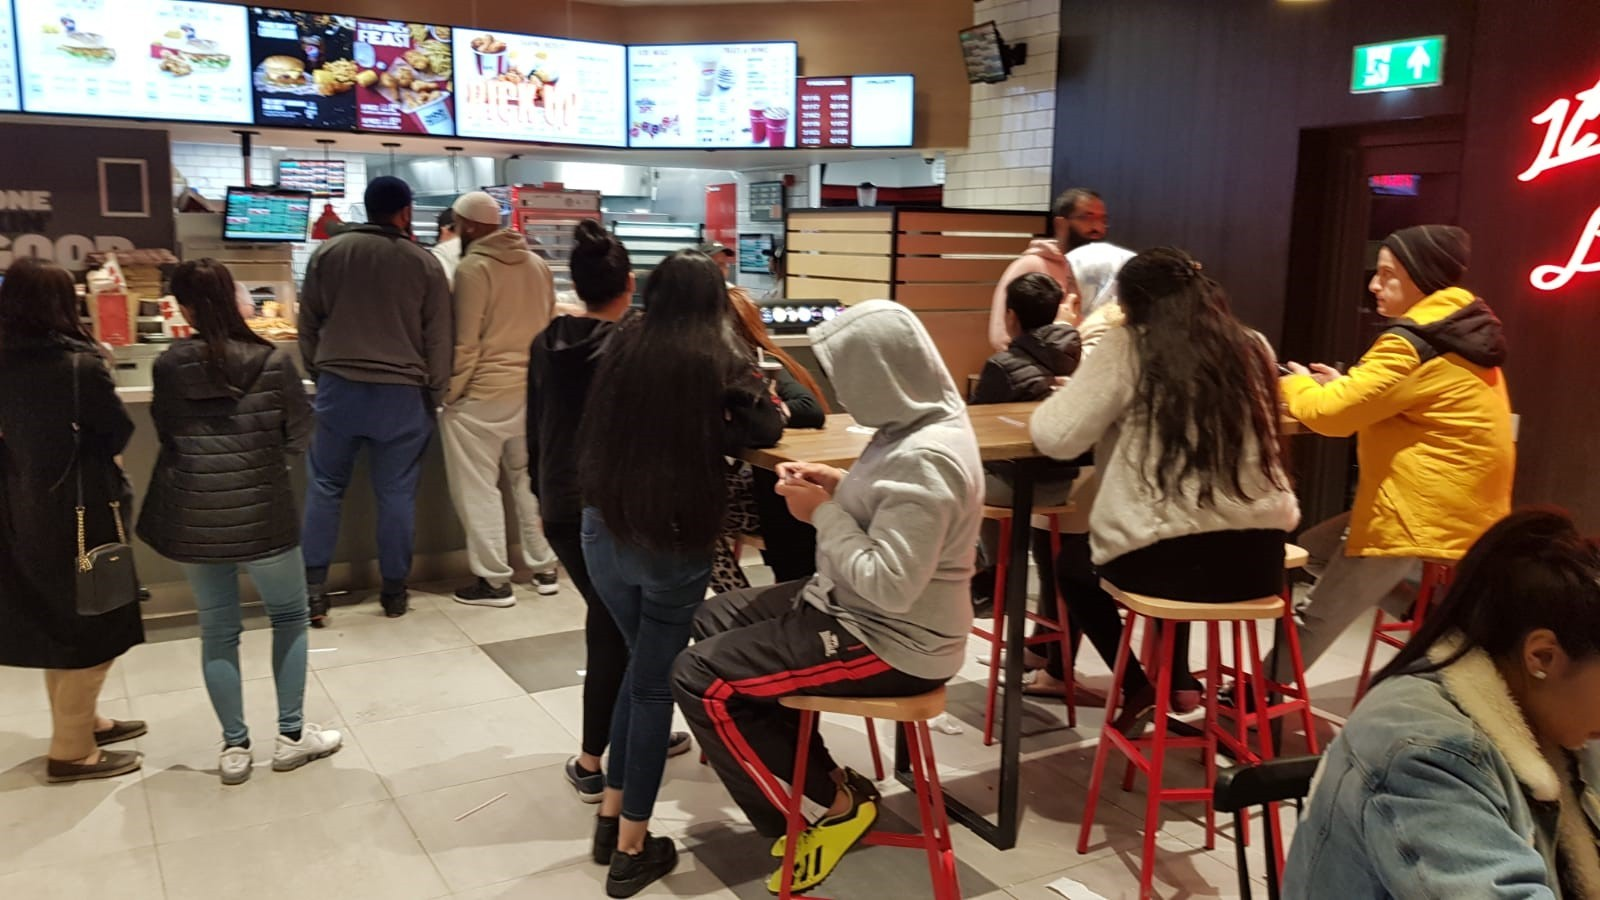 People waiting at the new KFC at Frontier Park